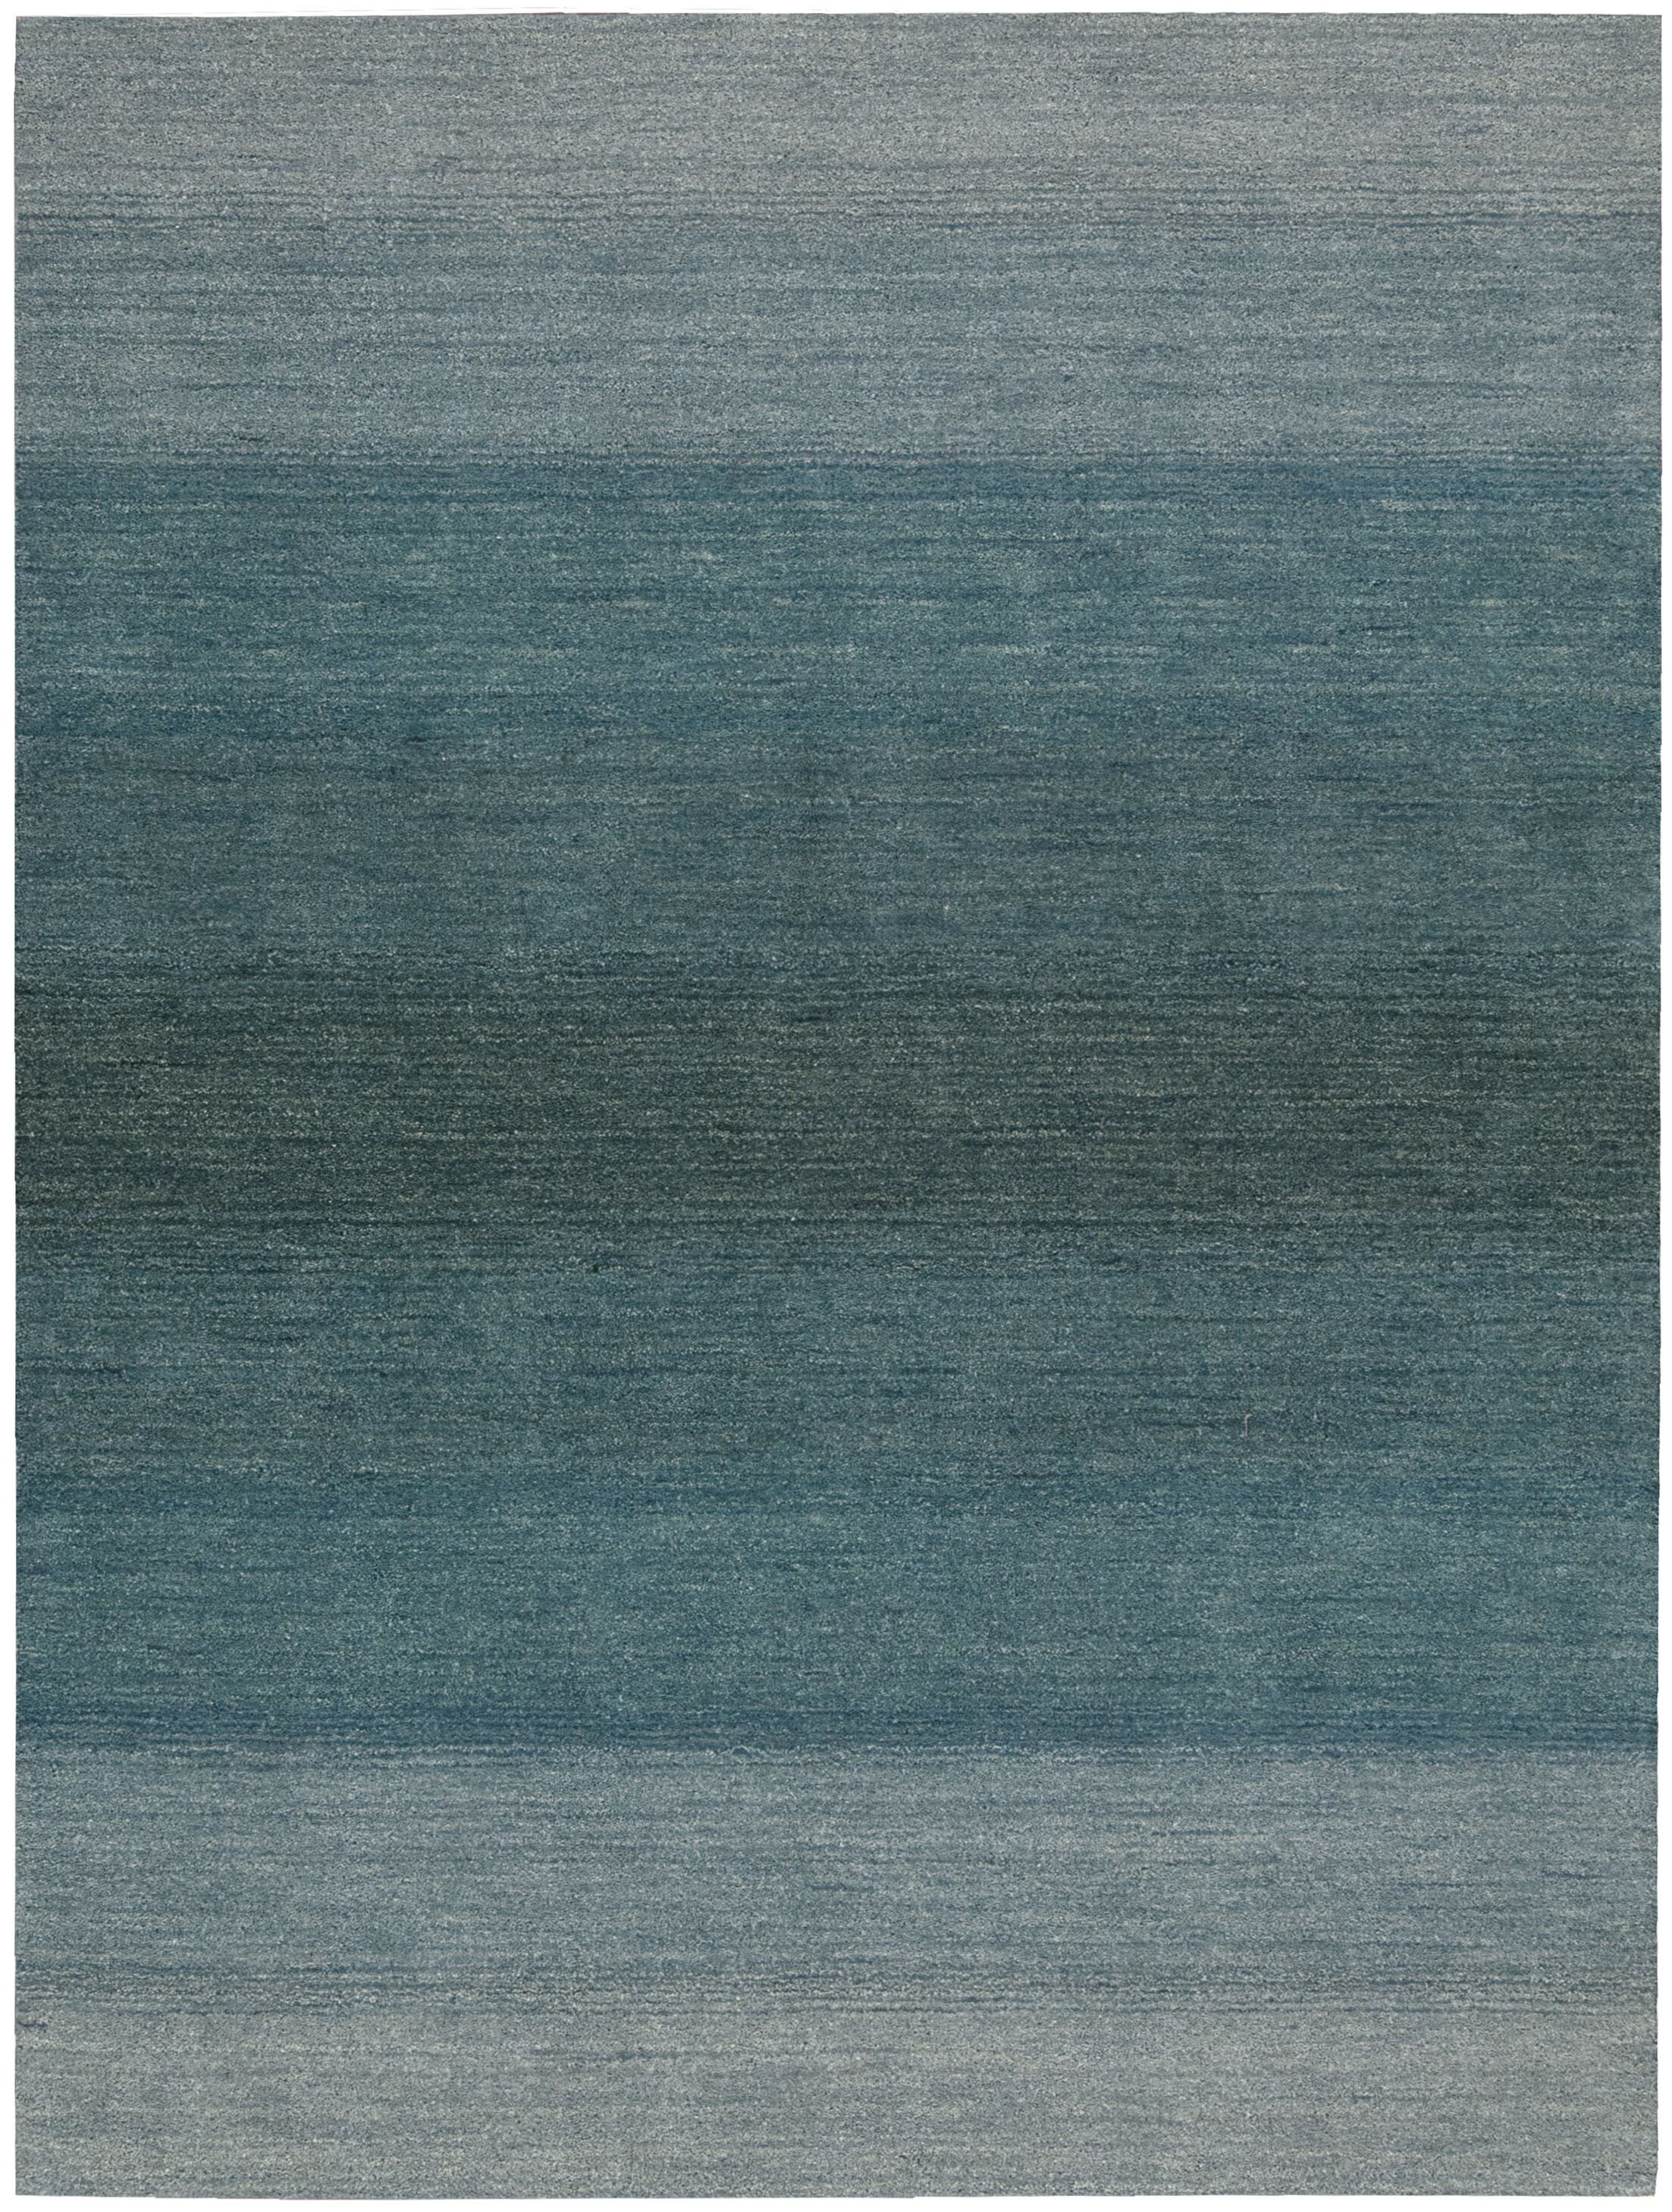 Linear Glow Hand-Woven Watercolor Aqua Area Rug Rug Size: Rectangle 4' x 6'